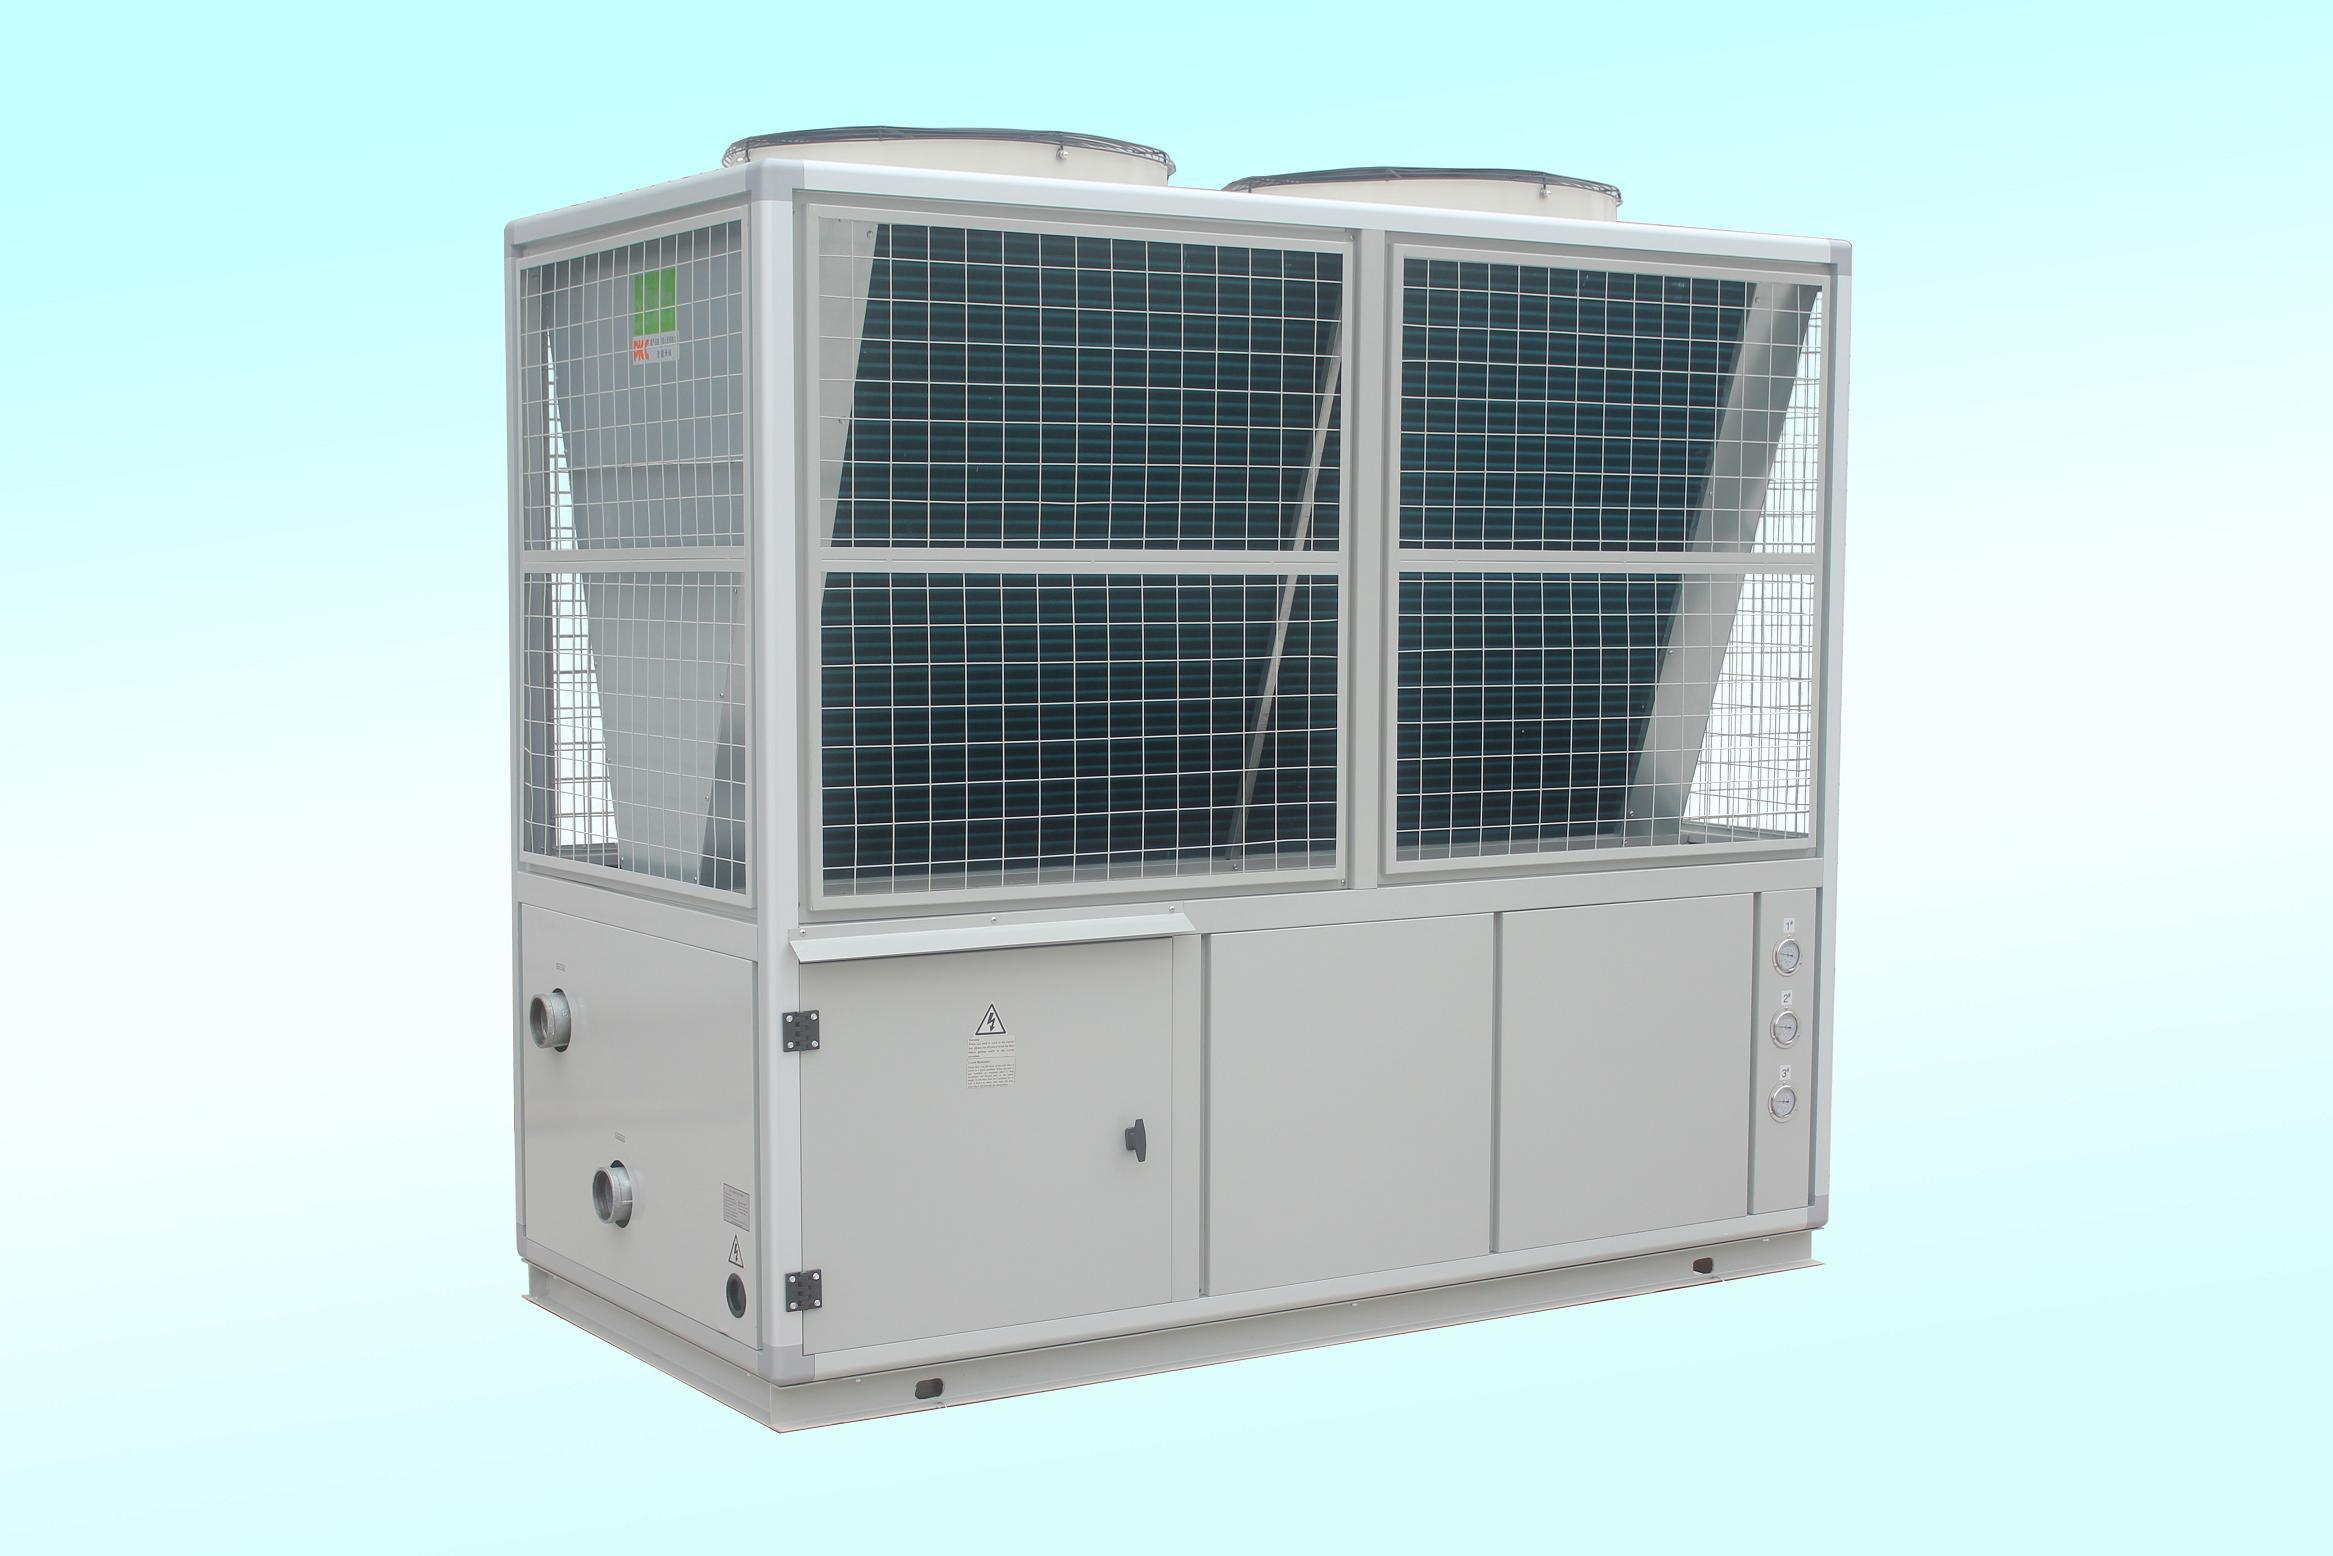 Industrial Water Chiller (HWAC) China Water Chiller Industrial  #3C8F8F